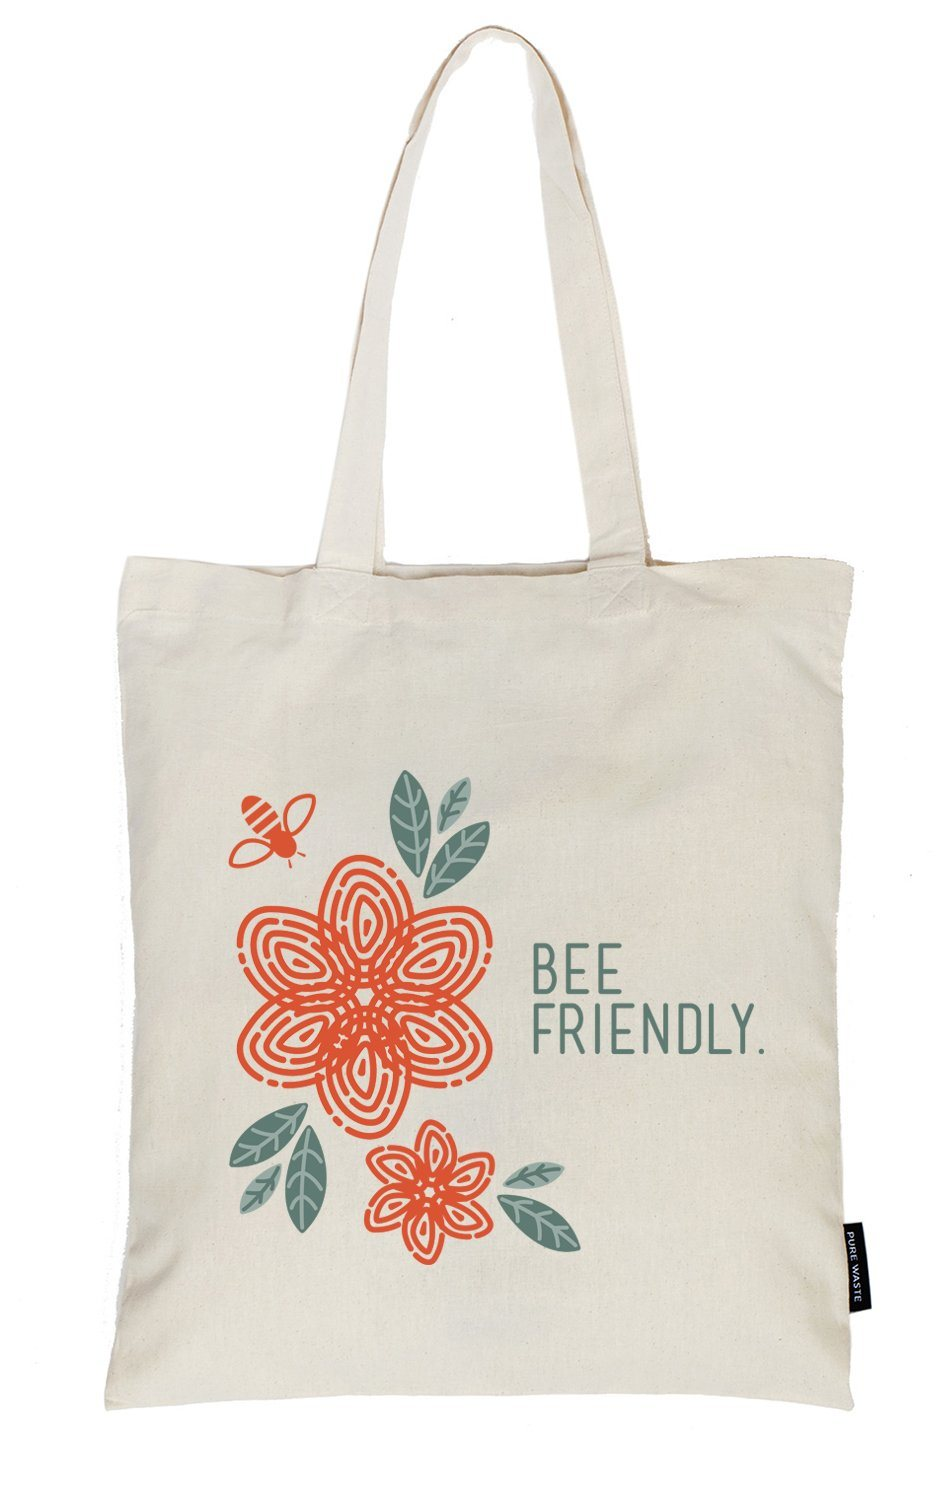 Weekendbee - Bee Friendly - Charity Canvas Bag - Weekendbee - sustainable sportswear